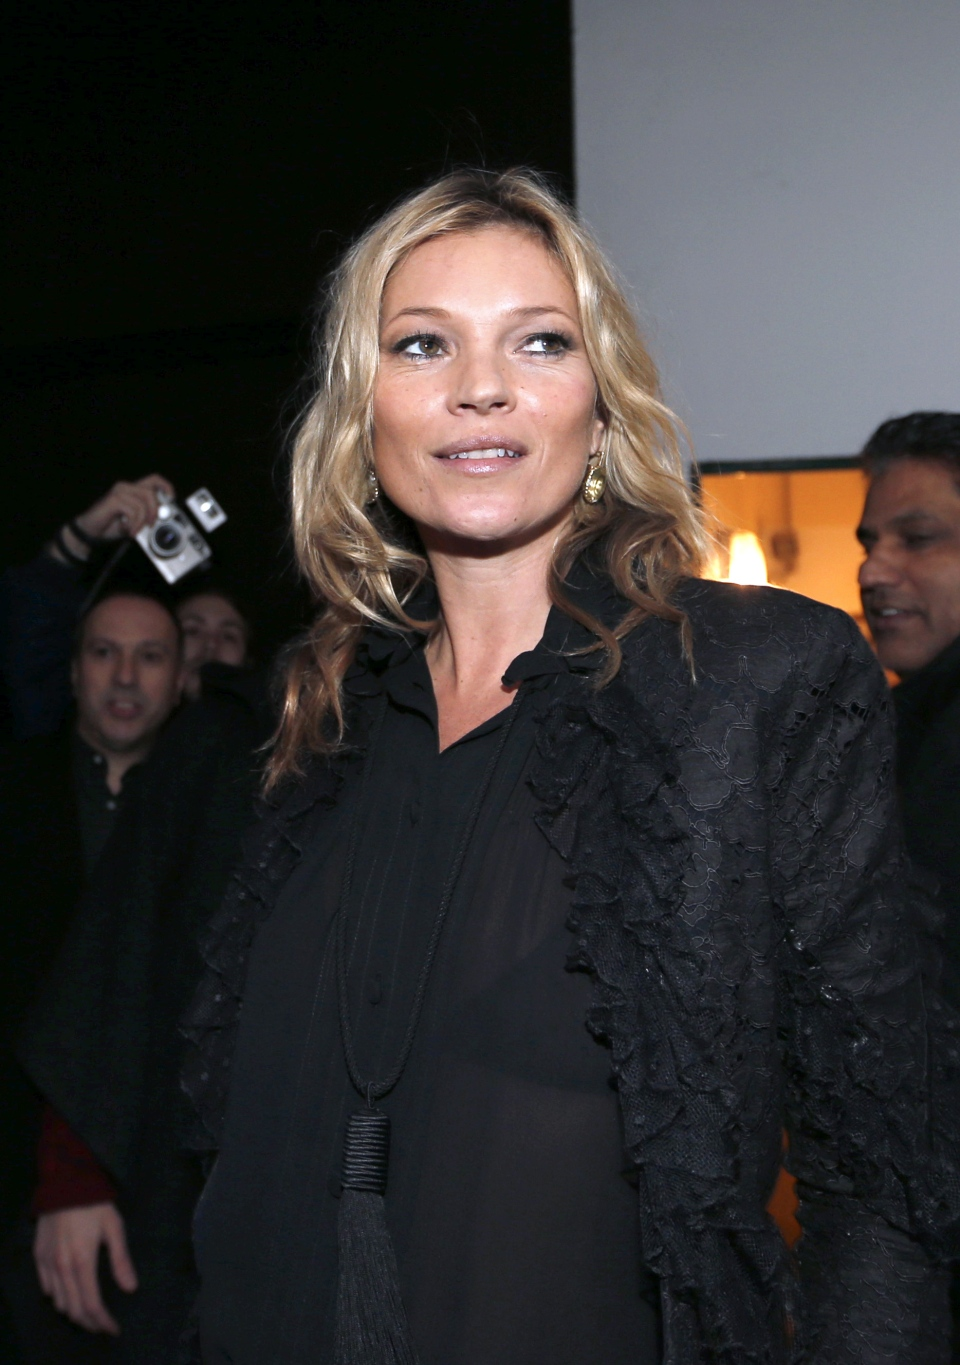 Kate Moss has a busy few months coming up as she makes her debut as contributing fashion editor at British Vogue, and in April launches an eagerly anticipated new collaboration with high-street fashion powerhouse Topshop. (AFP Photo/Francois Guillot)